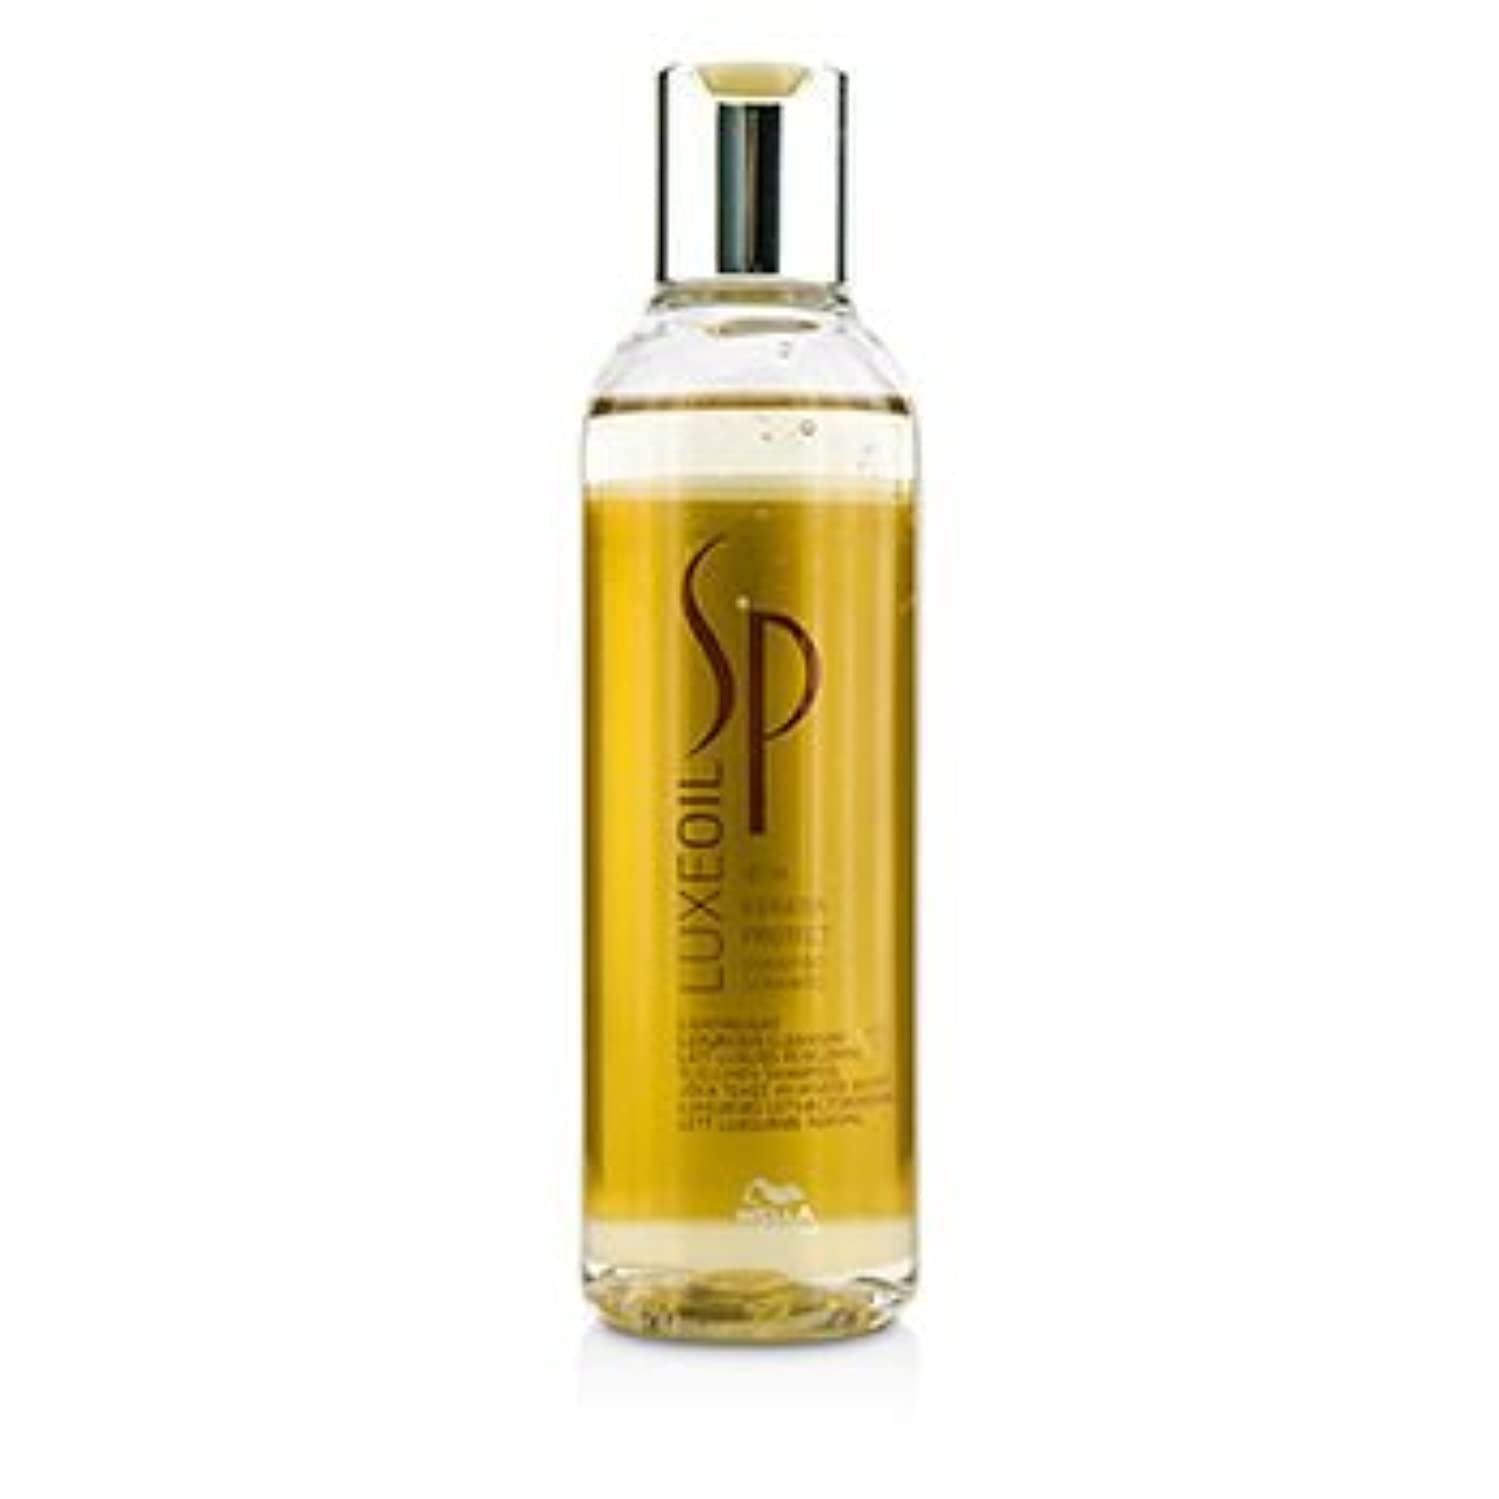 ピカソ陸軍遅らせるWella SP Luxe Hair Oil Keratin Protect Shampoo - 200ml by WELLA System Professional [並行輸入品]